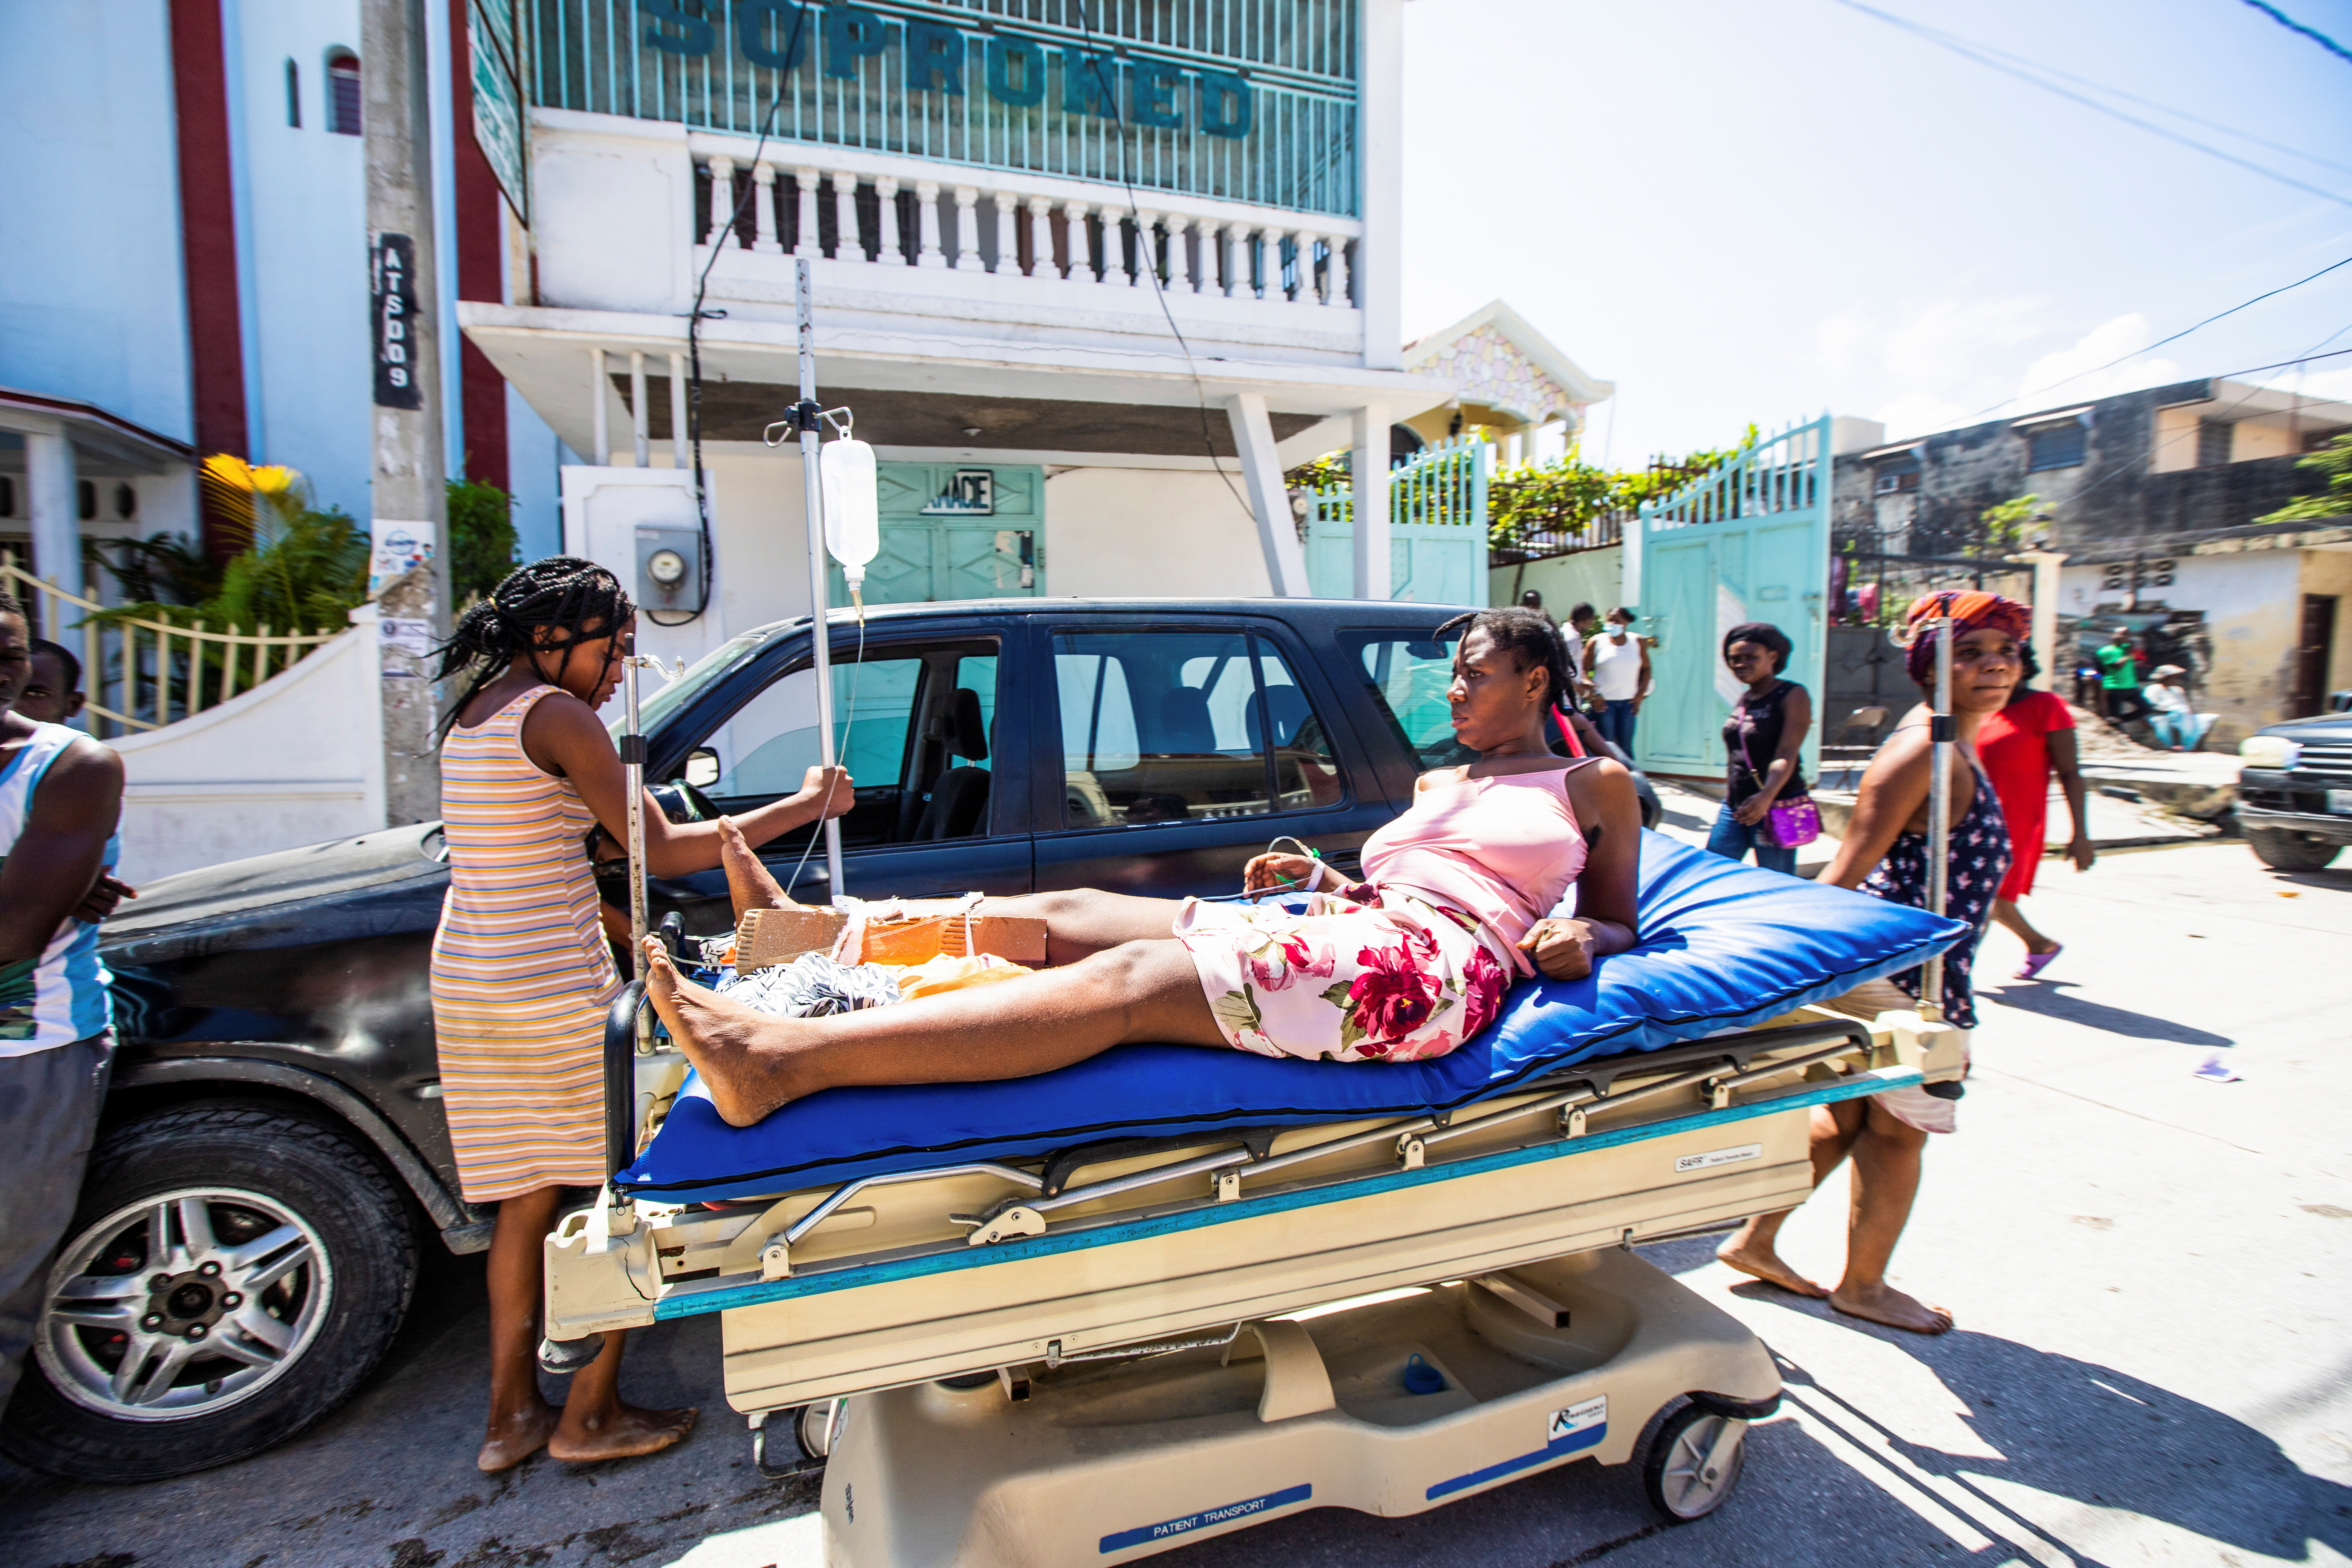 A woman injured during the 7.2 magnitude earthquake lies on a stretcher in Les Cayes, Haiti August 14, 2021. REUTERS/Ralph Tedy Erol NO RESALES. NO ARCHIVES